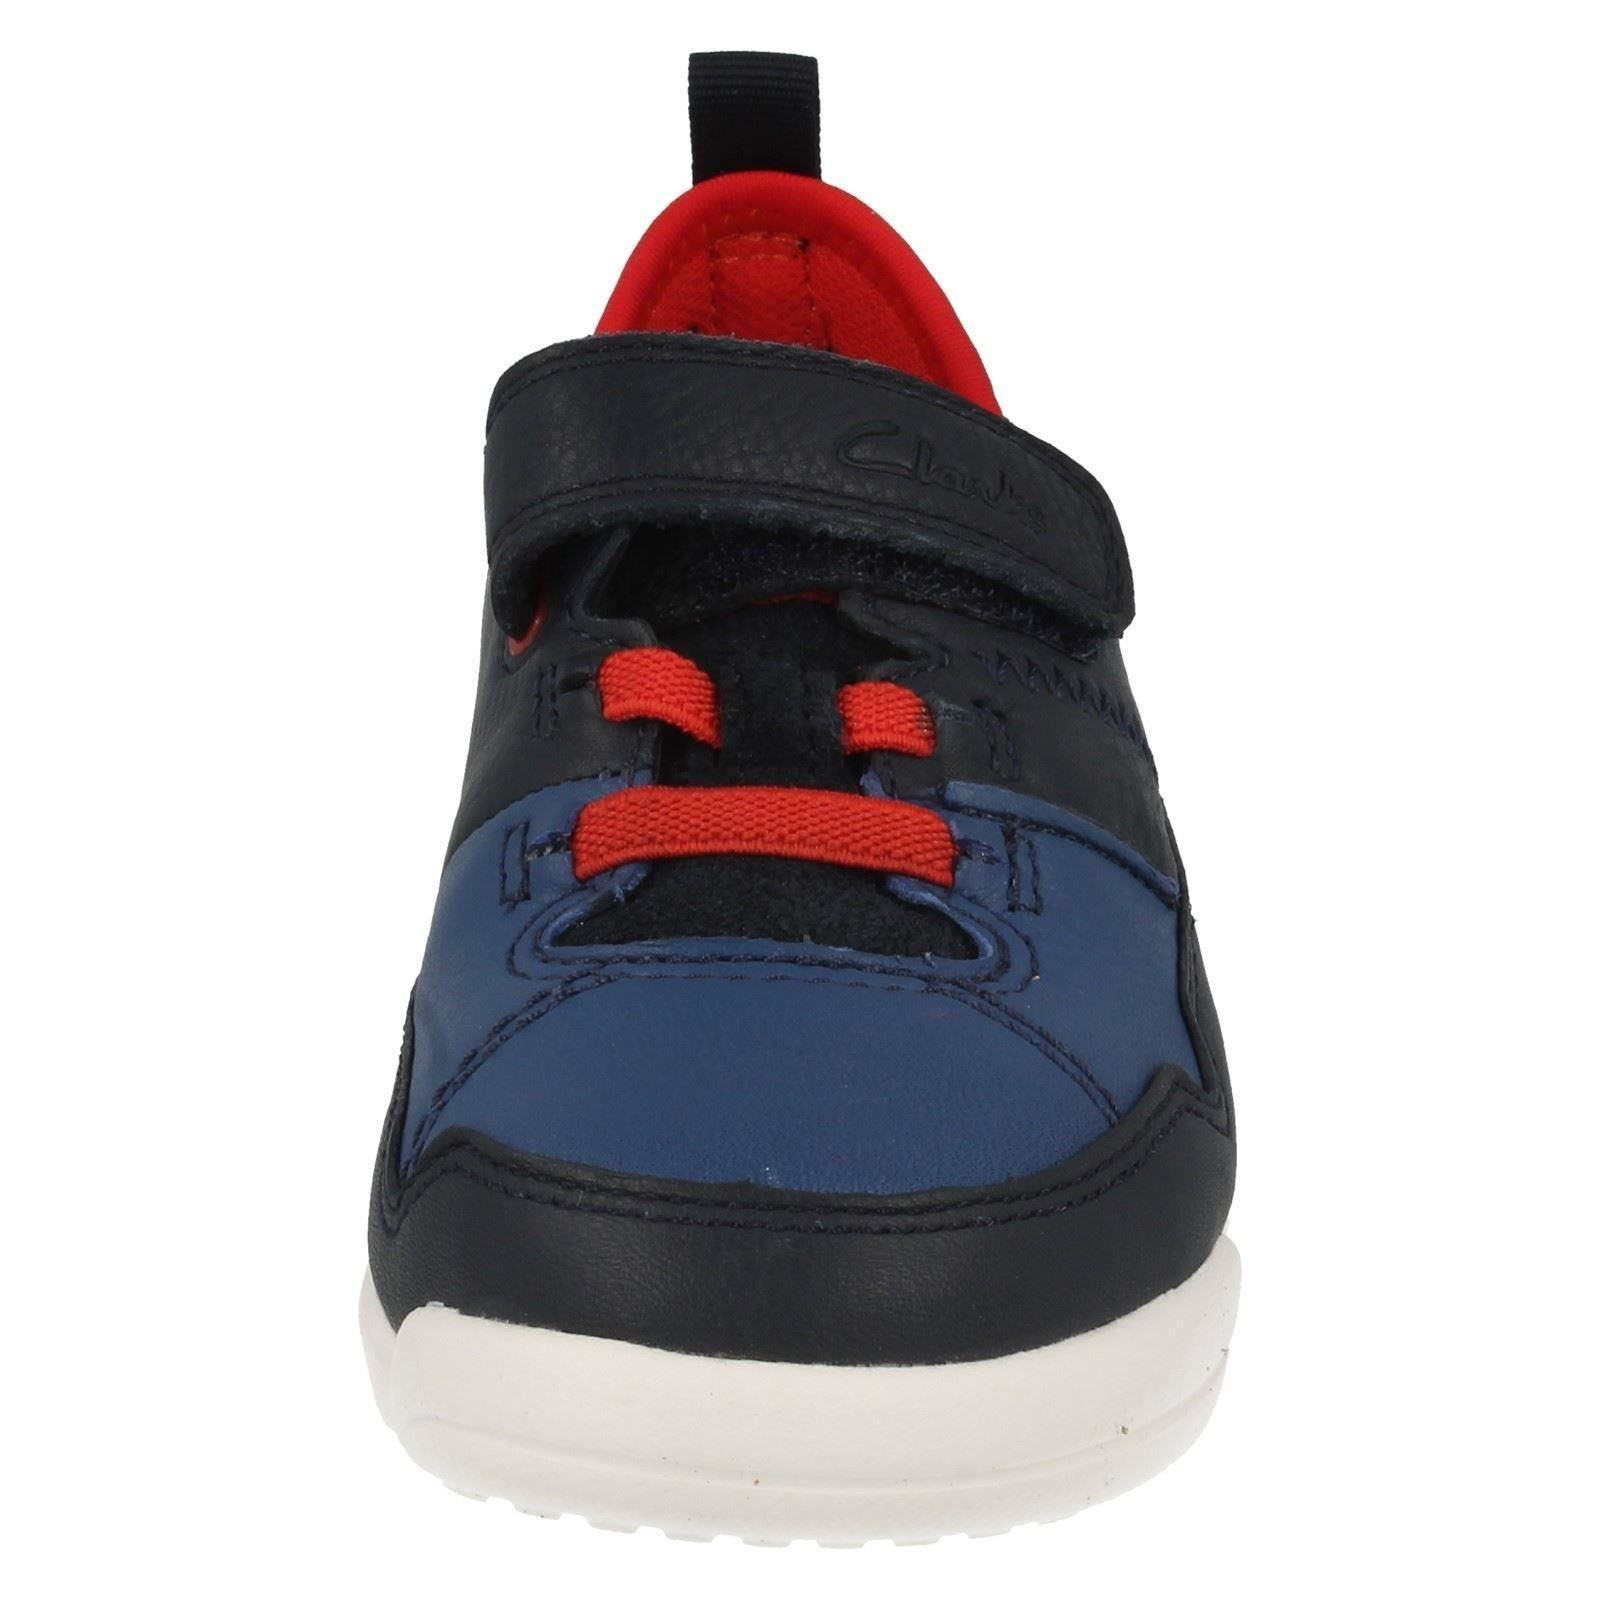 Clarks Boys Casual Shoes Tri Scotty